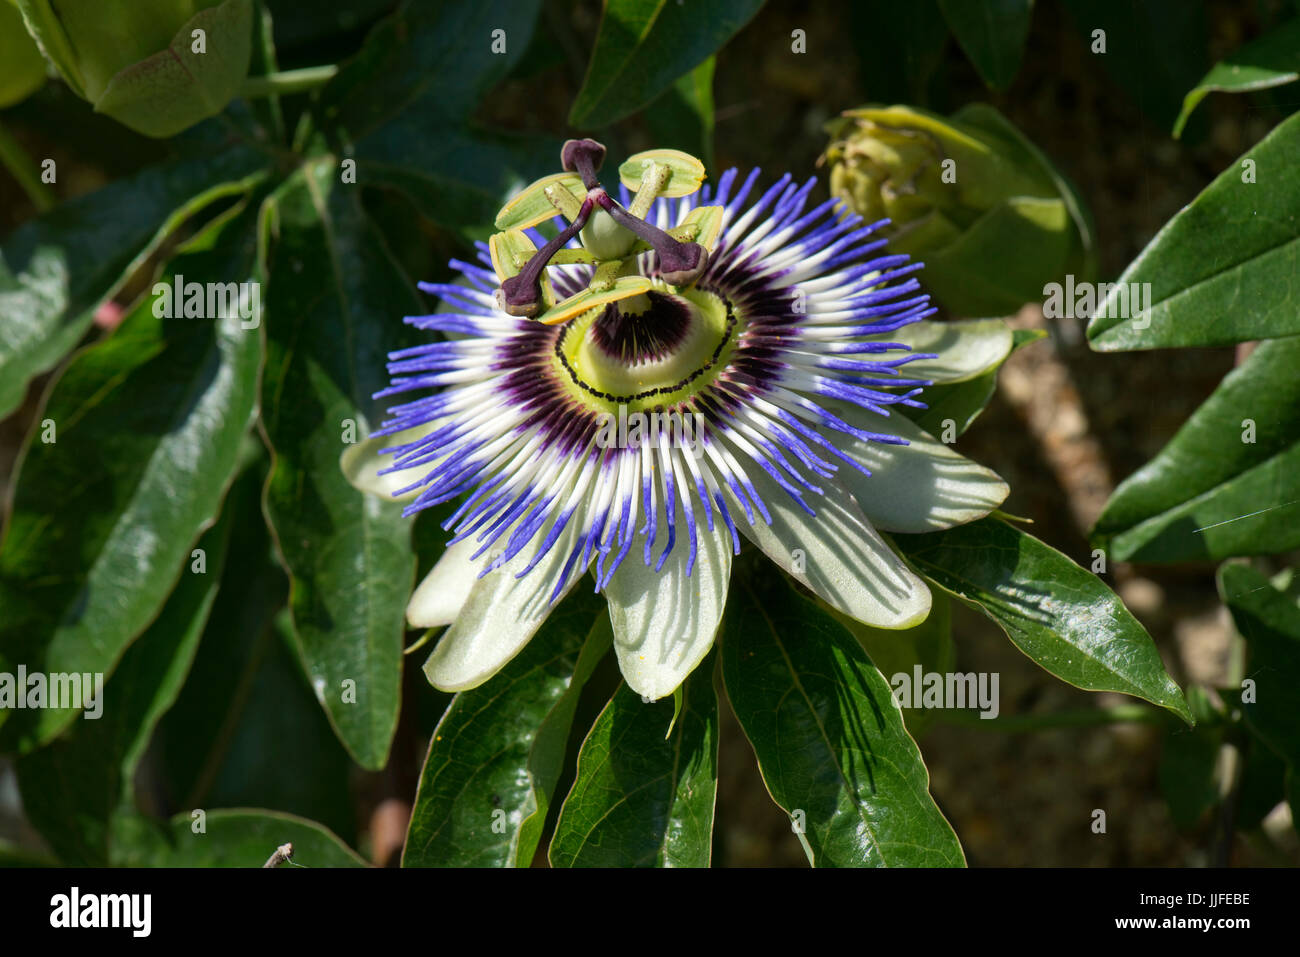 Blue passion flower, Passiflora caerulea, fully open and demonstrate several symbols of Christian belief from which - Stock Image